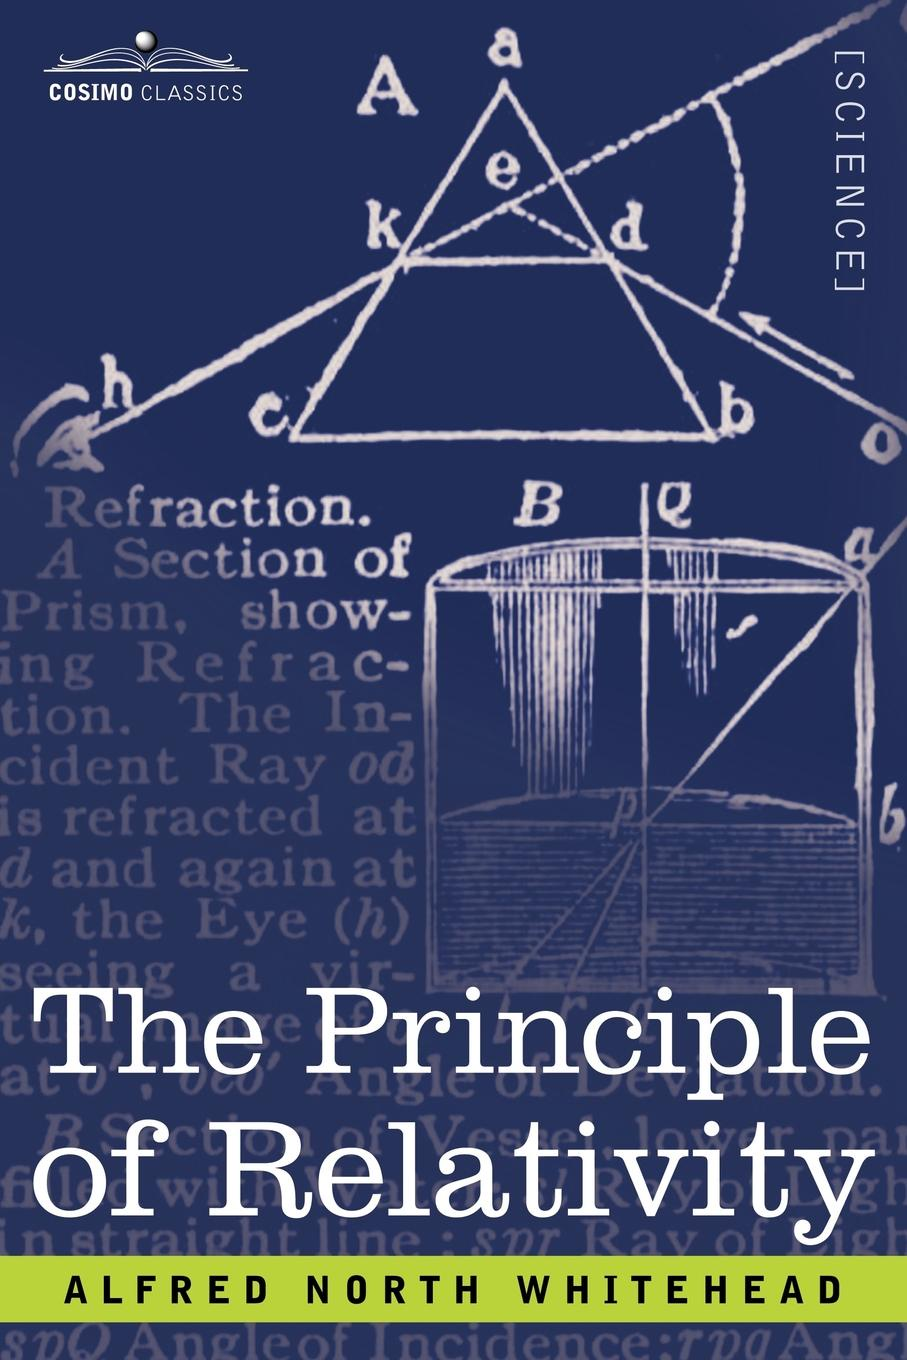 Alfred North Whitehead The Principle of Relativity alfred north whitehead russell bertrand alfred north whitehead principia mathematica volume one